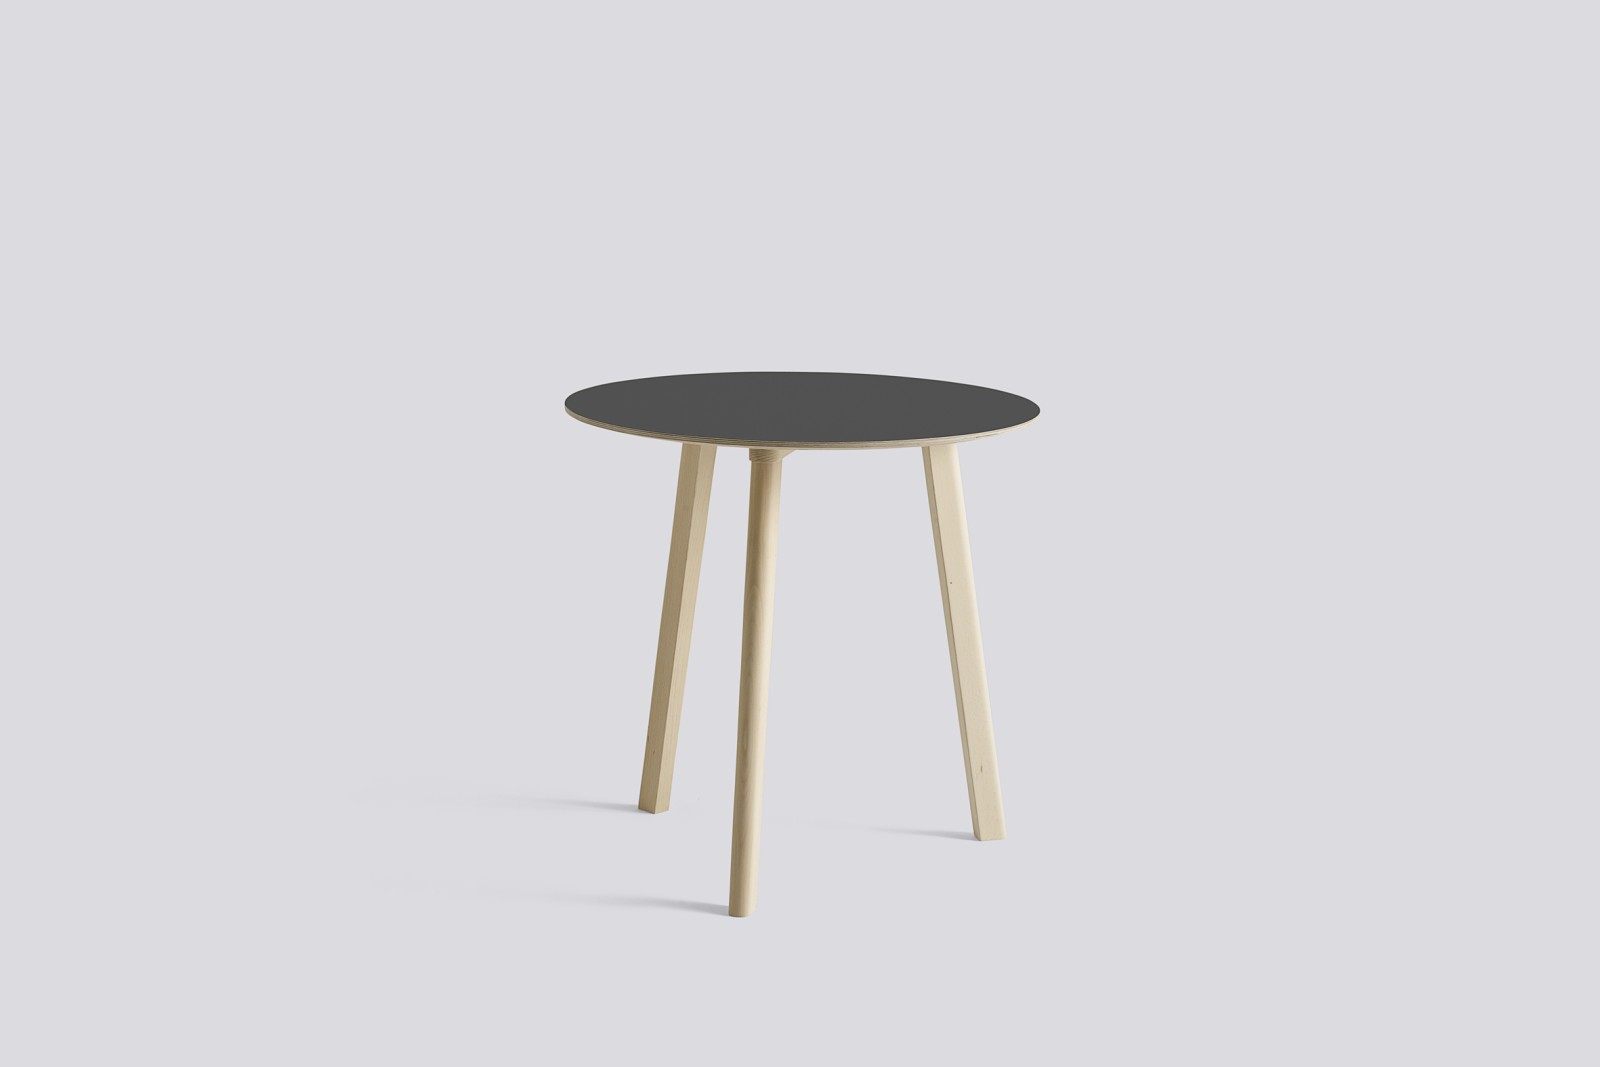 Copenhague Deux (CPH 220) Round Dining Table Stone Grey Laminate Top, Untreated Beech Base, 75 cm